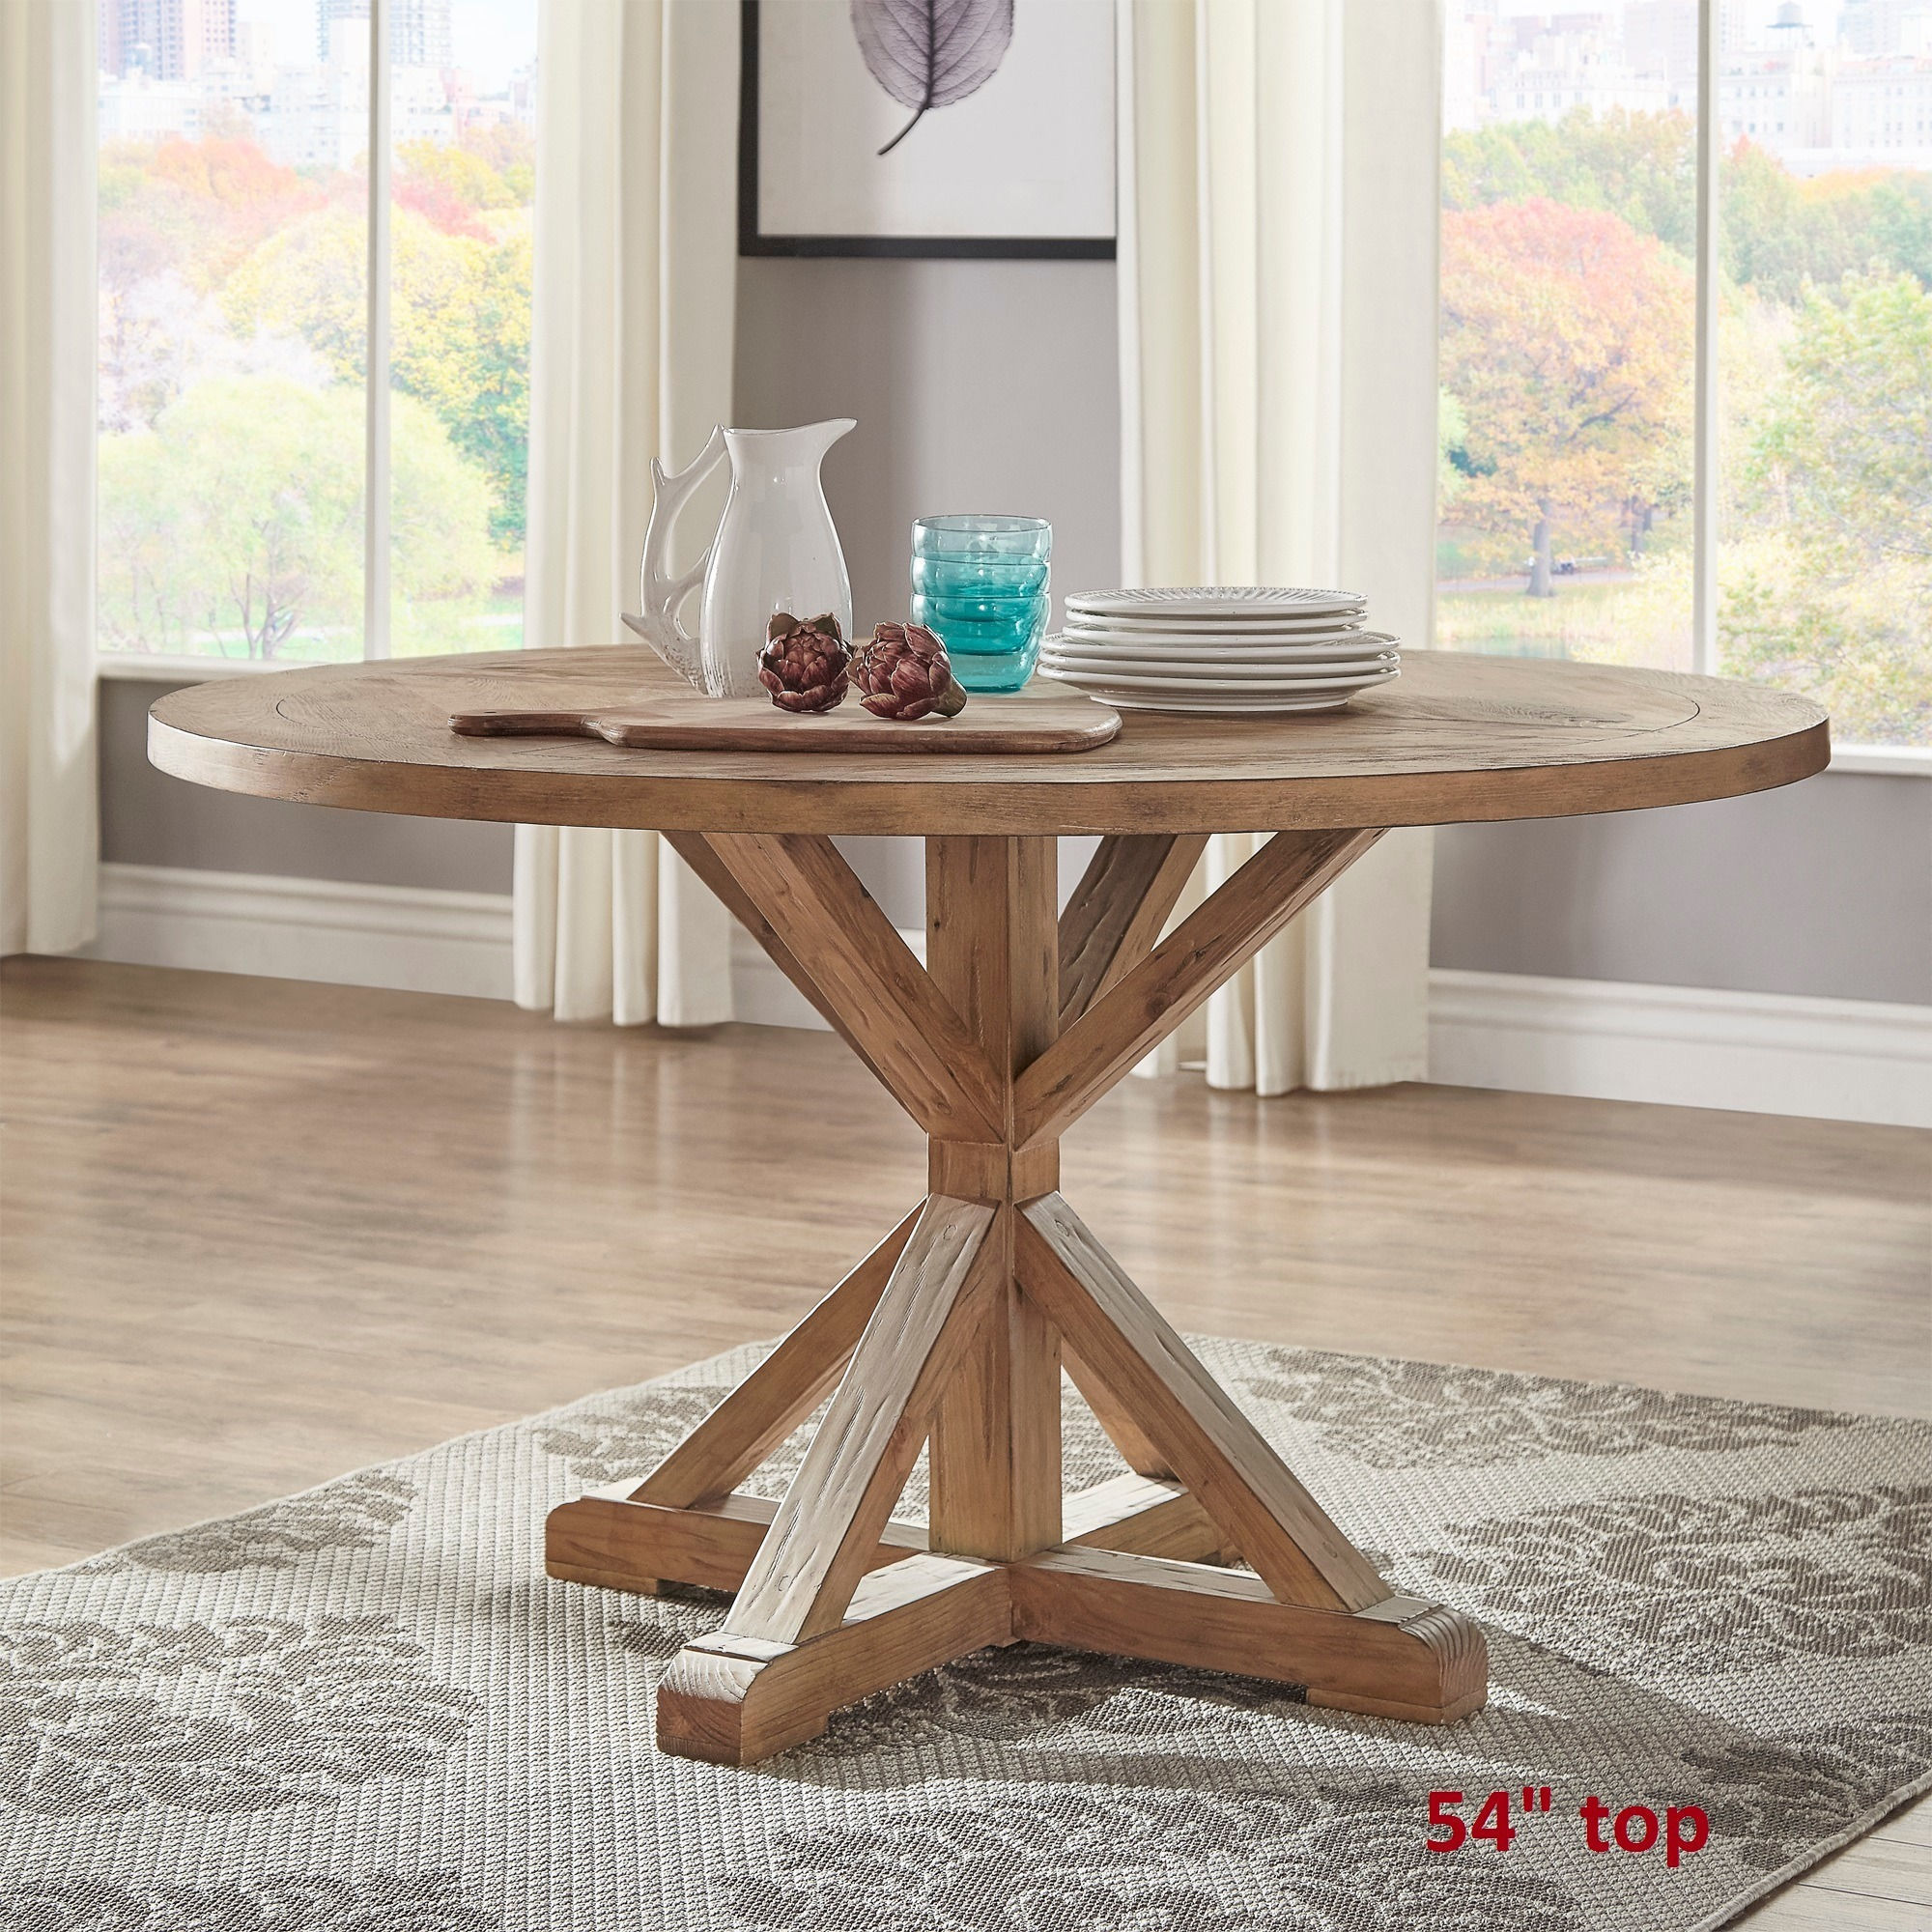 Benchwright Rustic X-base Round Pine Wood Dining Table by iNSPIRE Q Artisan  - Free Shipping Today - Overstock.com - 17207387